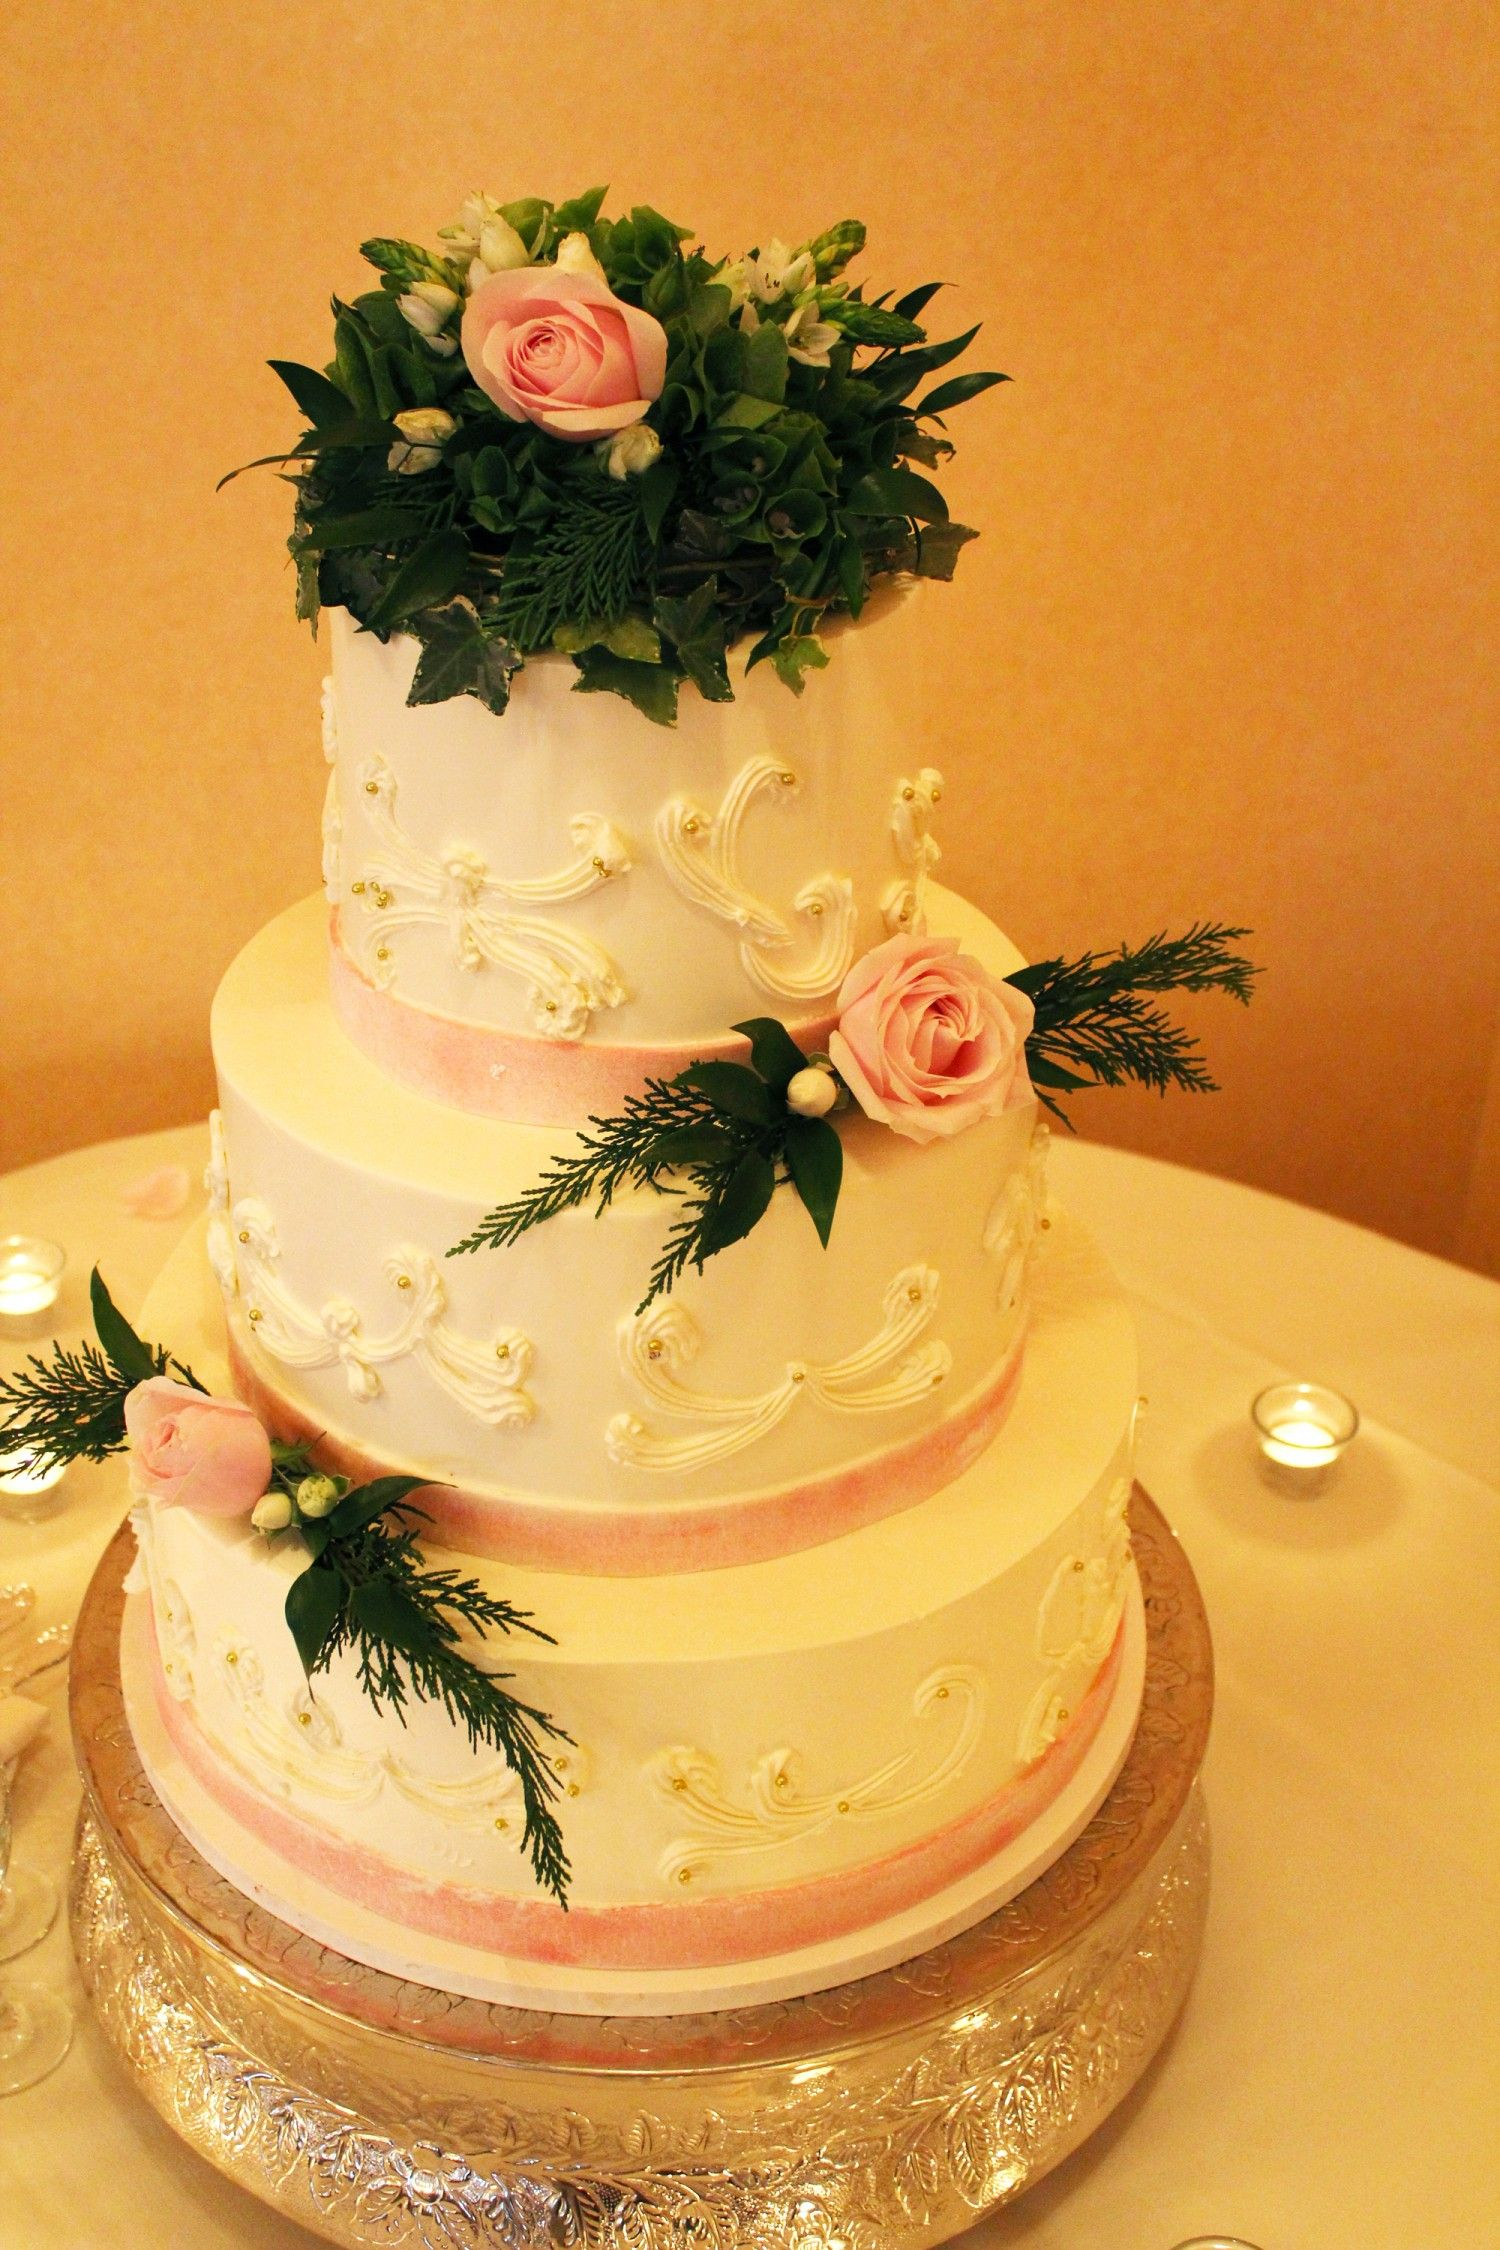 Cake Flowers: Topper & 2 tiers light pink roses and greenery ...